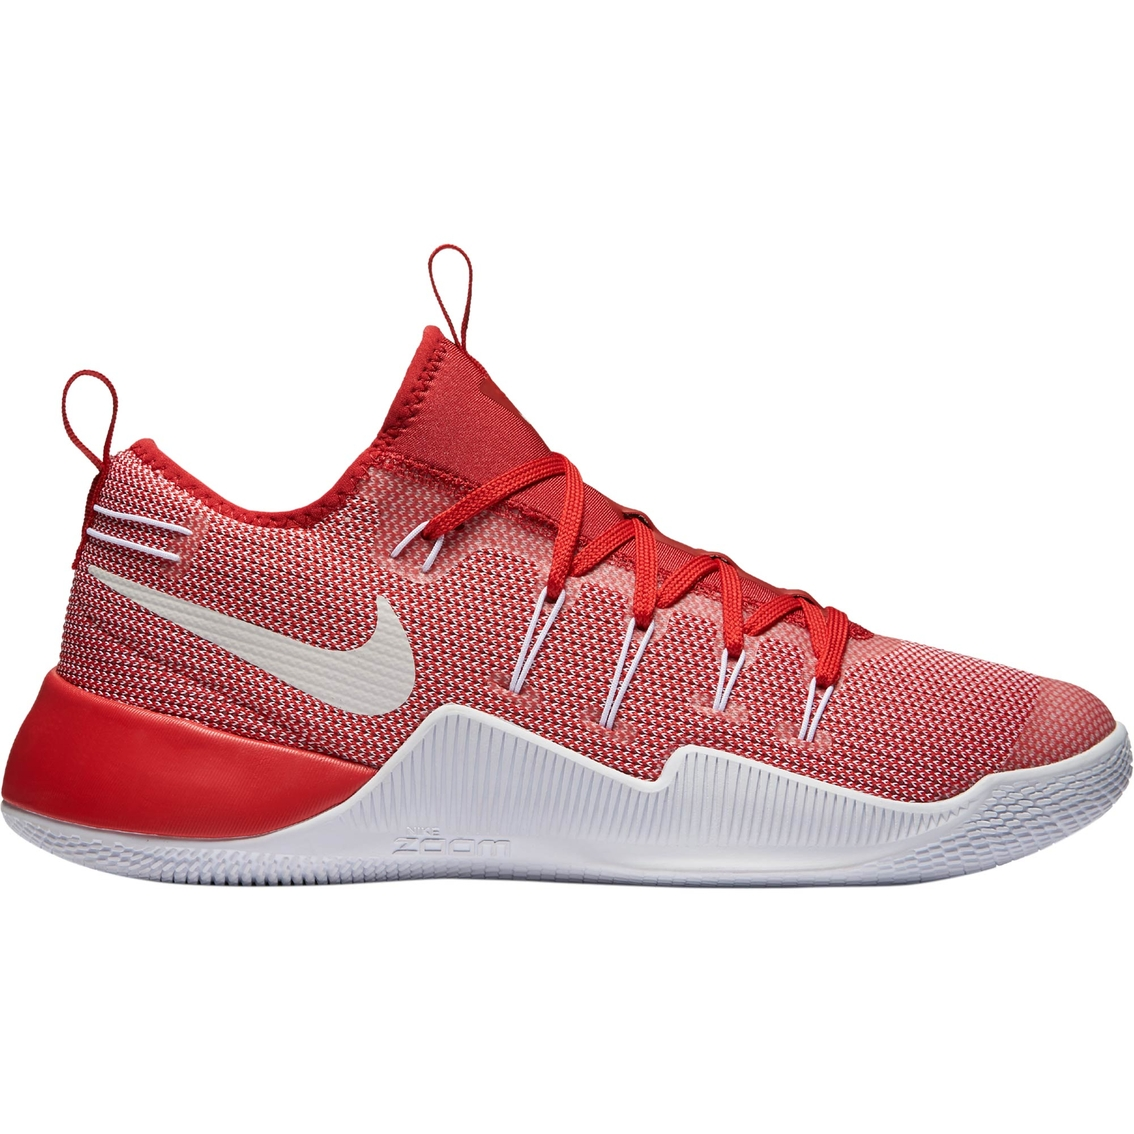 6daa75abe0c1 Nike Men s Hypershift Tb Basketball Shoes